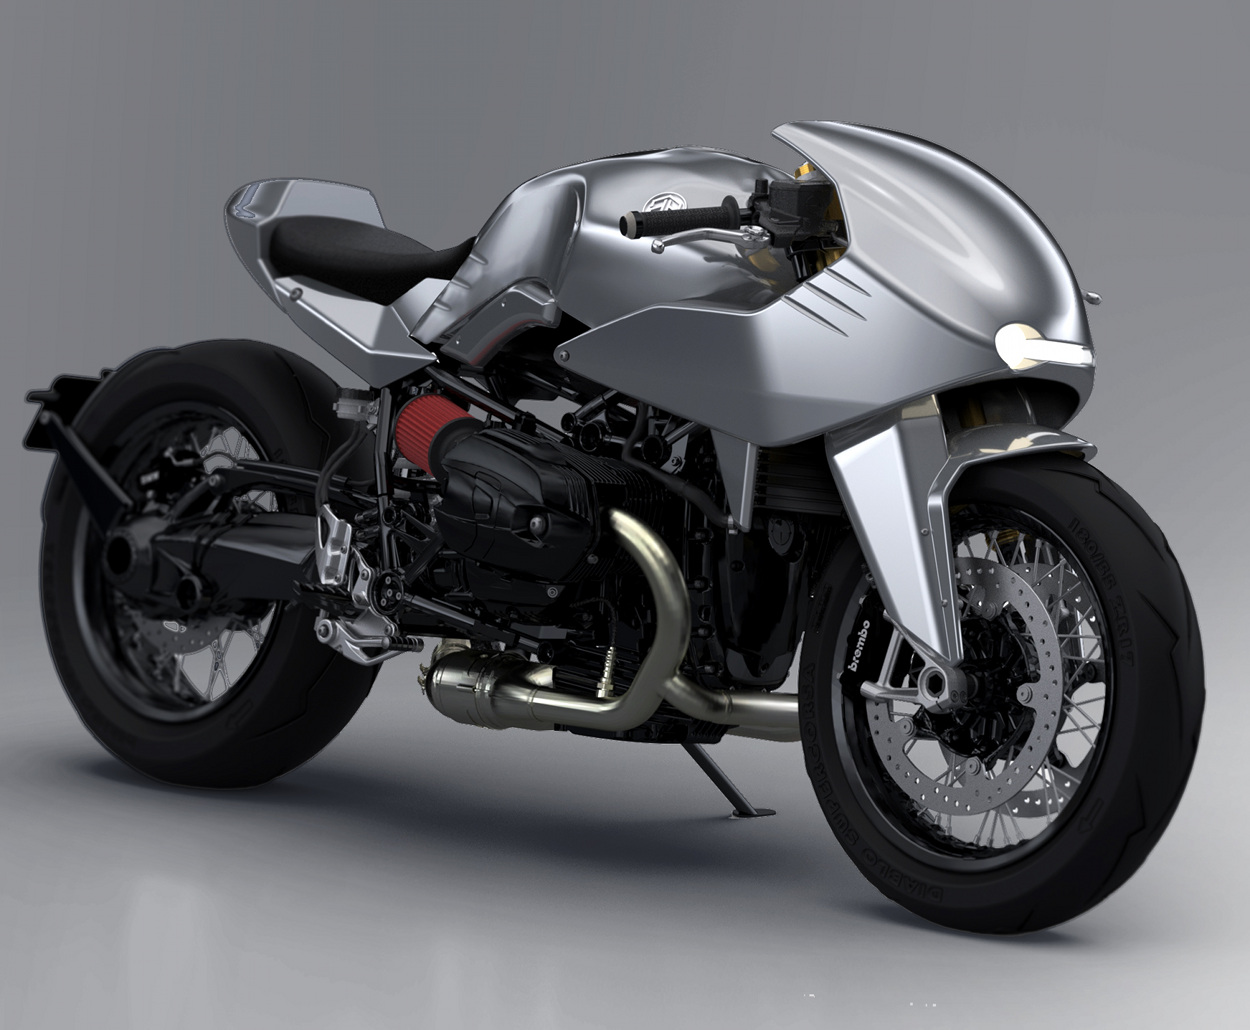 BMW R nineT Cafe Racer Kit